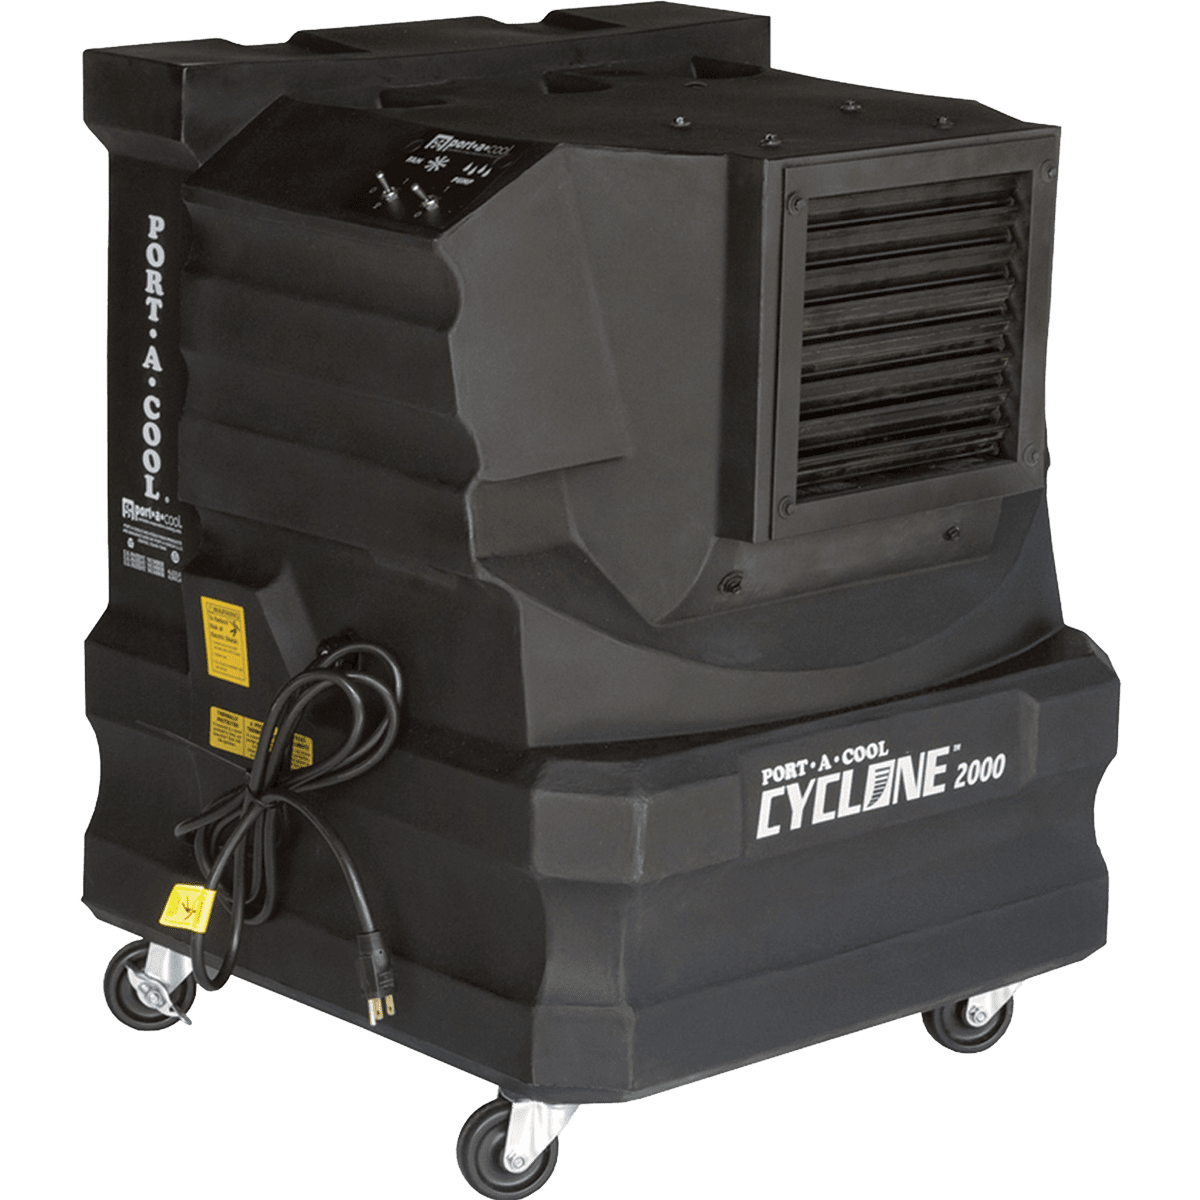 Port-A-Cool Cyclone 2000 Portable Evaporative Cooling Unit po3187